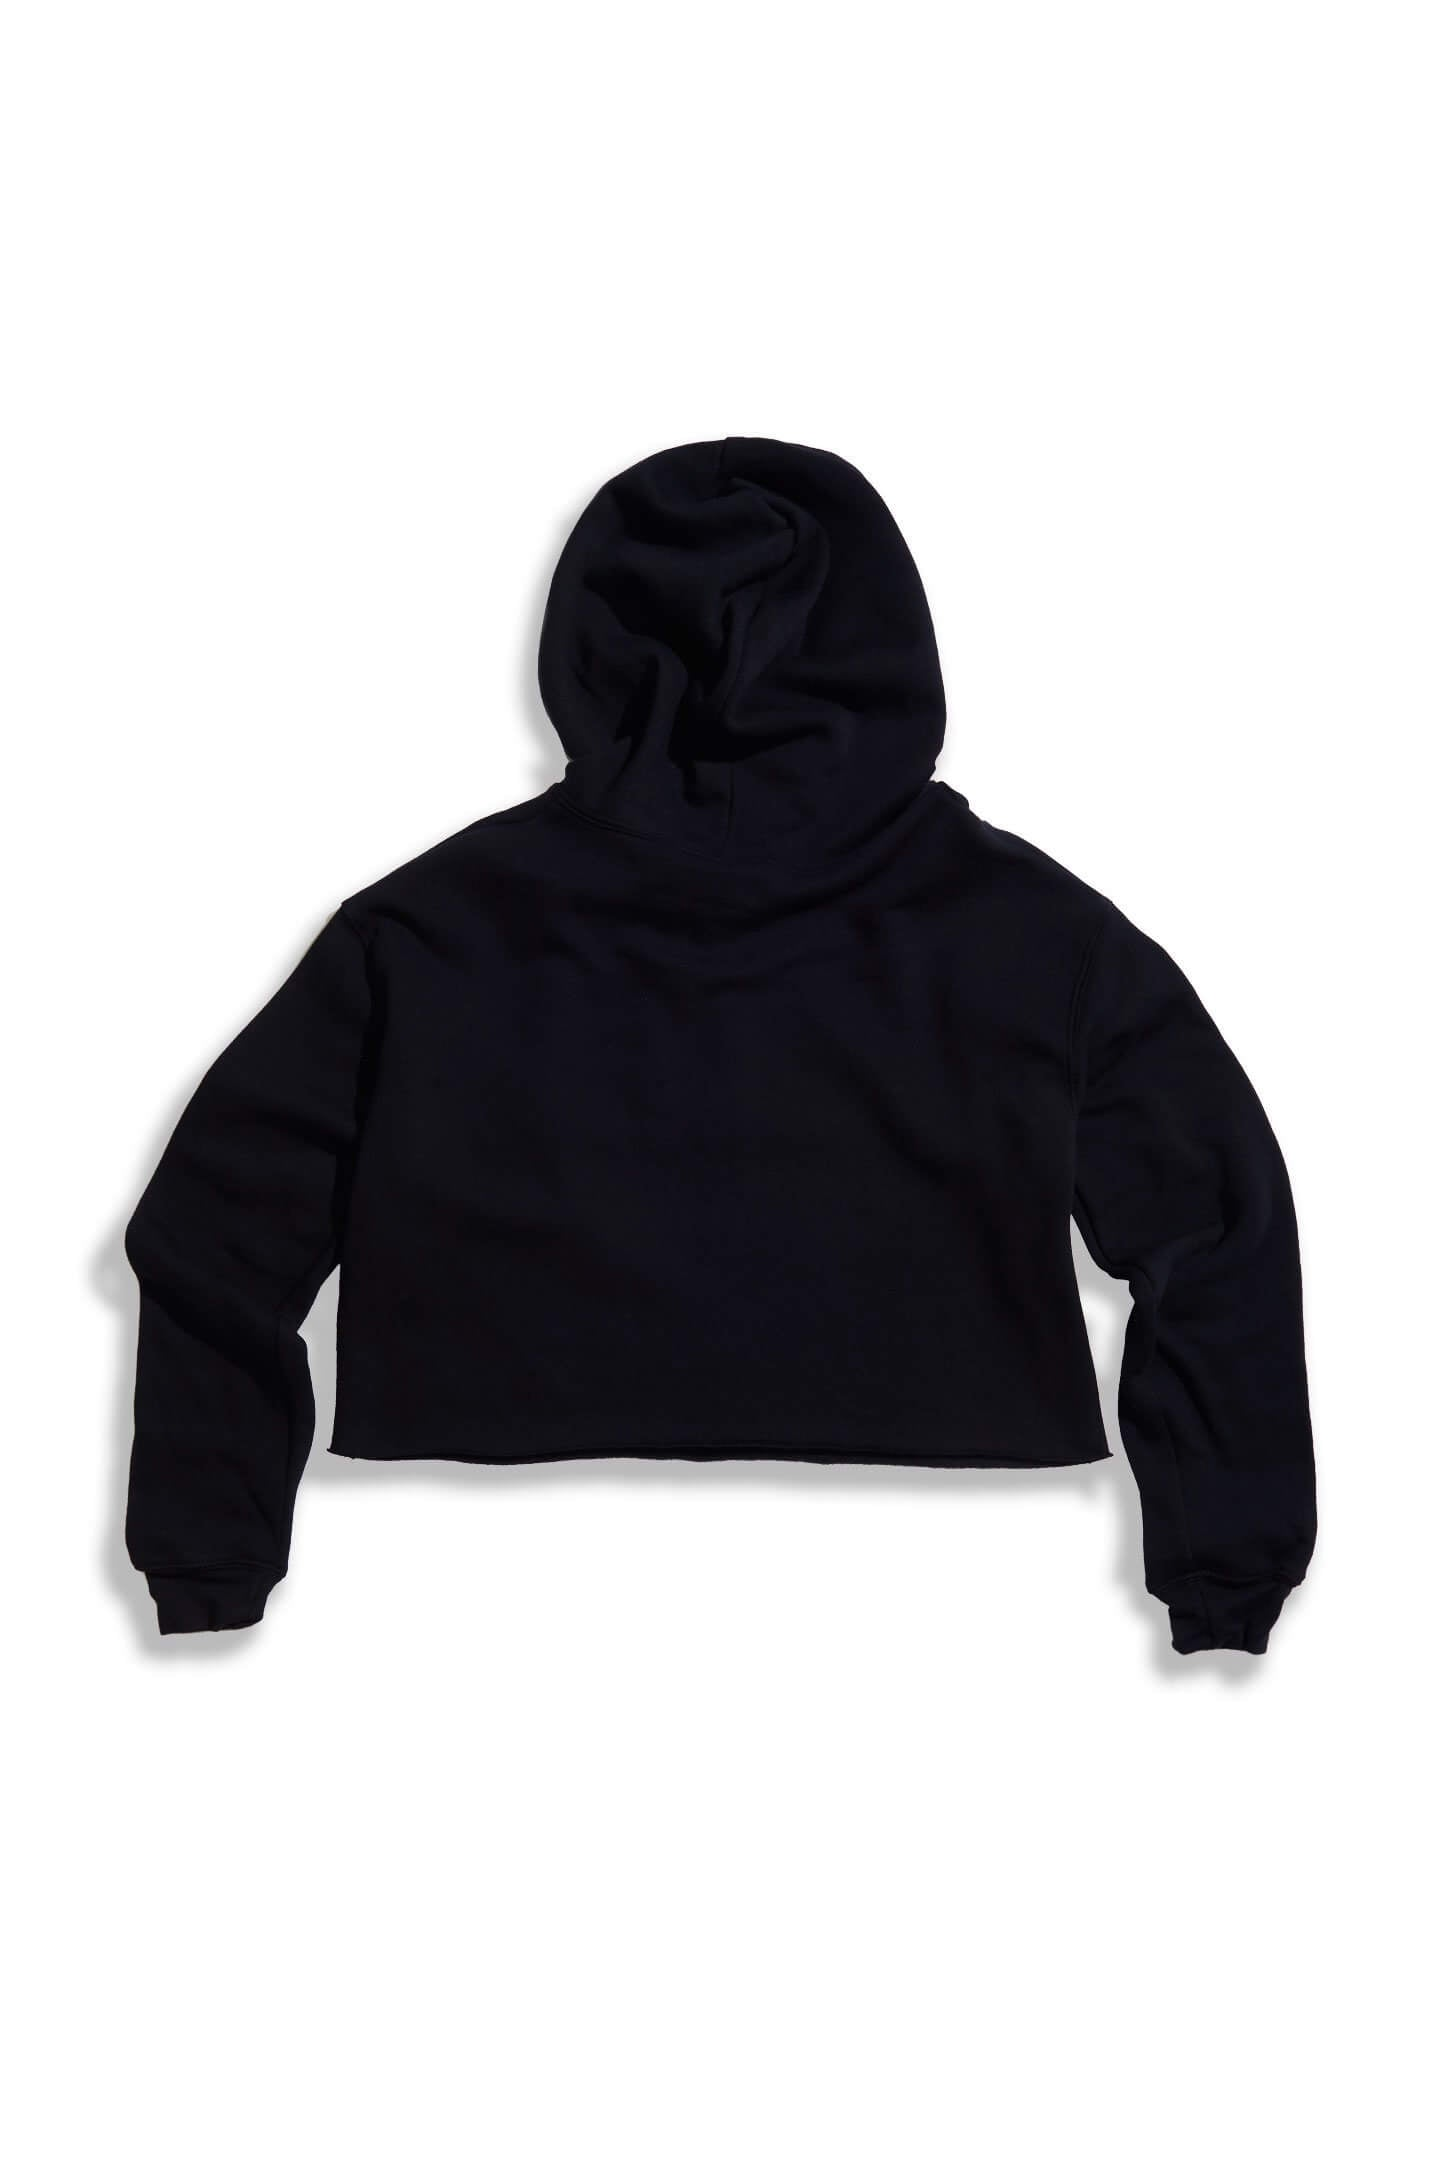 GIRLS FIGHT CROP HOODIE - BLACK